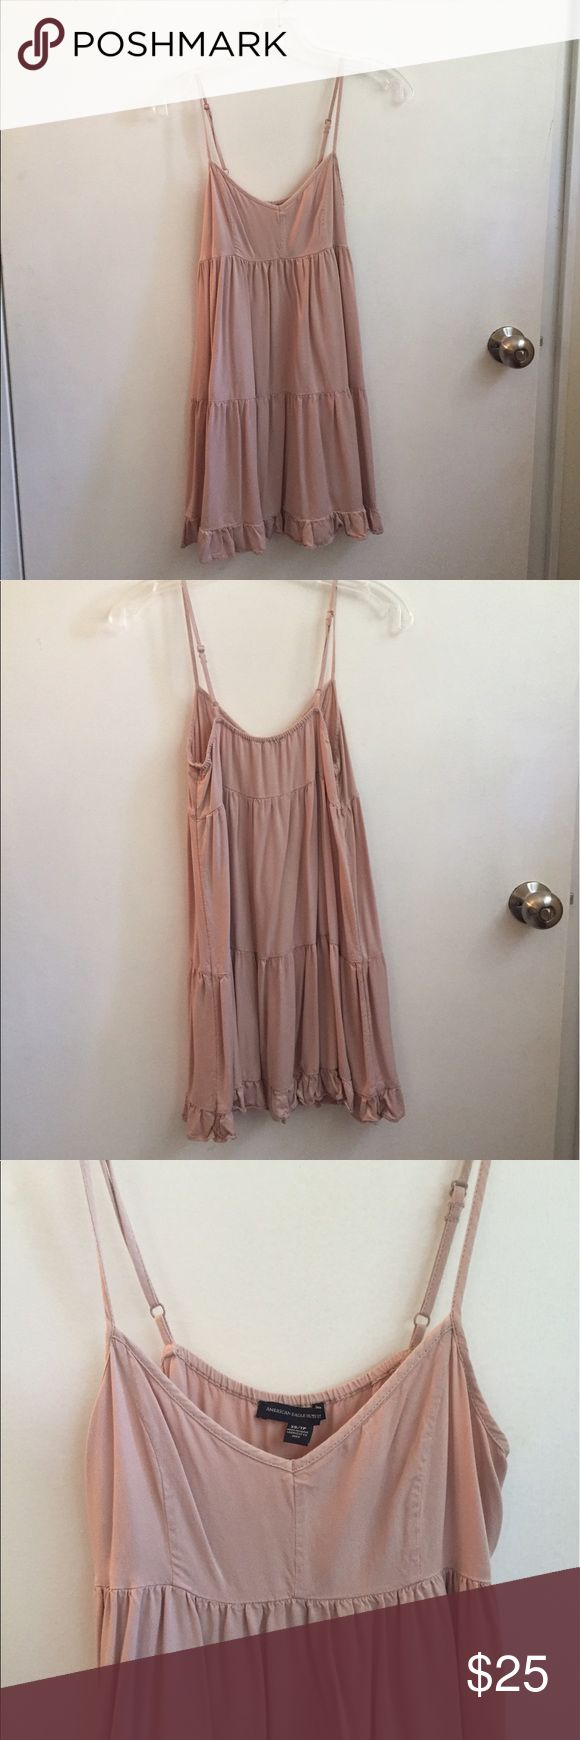 Light Pink American Eagle Dress Very flattering and comfortable! Only worn a few times! American Eagle Outfitters Dresses Mini